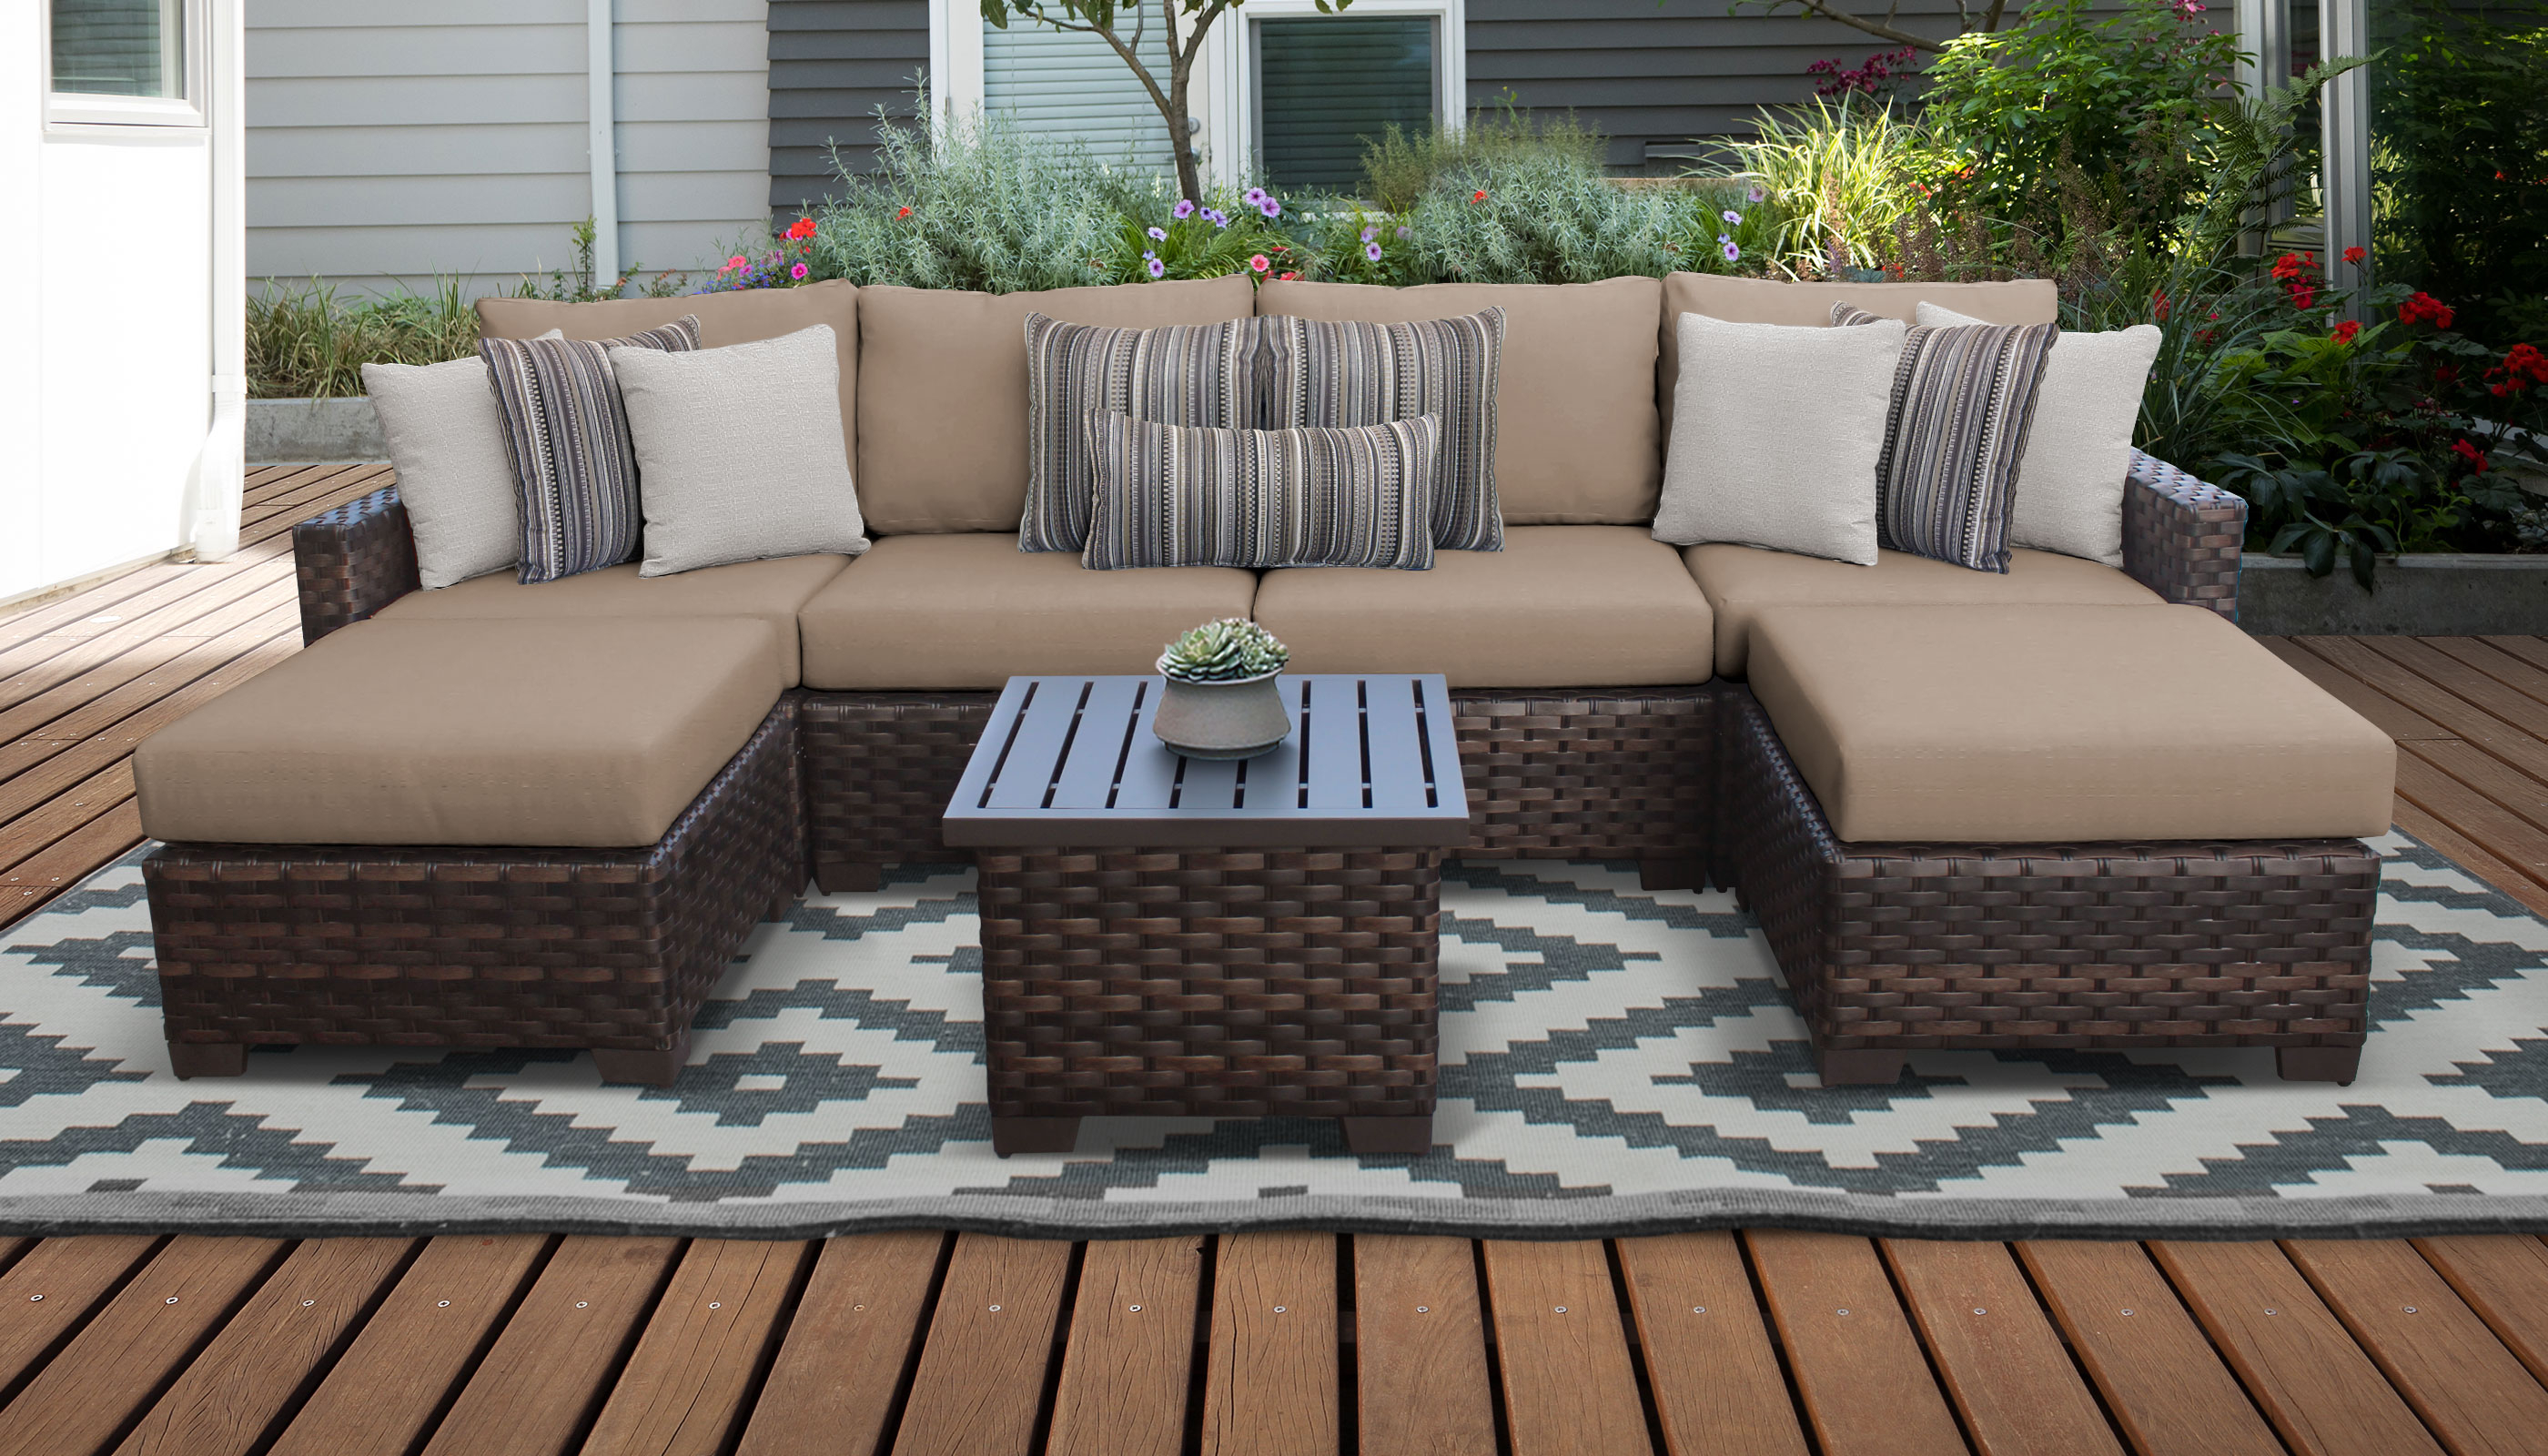 Oreland Patio Sofas With Cushions Inside Favorite River 7 Piece Outdoor Wicker Patio Furniture Set 07A (View 13 of 20)